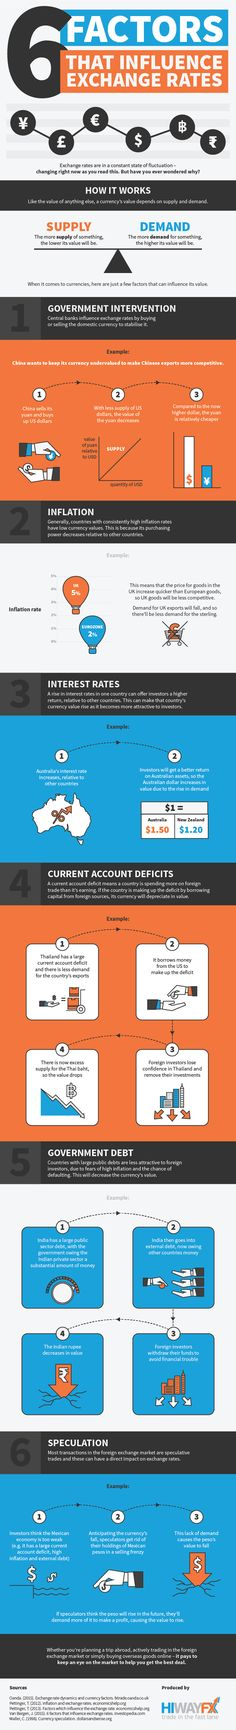 22 Best Accounting images in 2019 | Accounting, Accounting